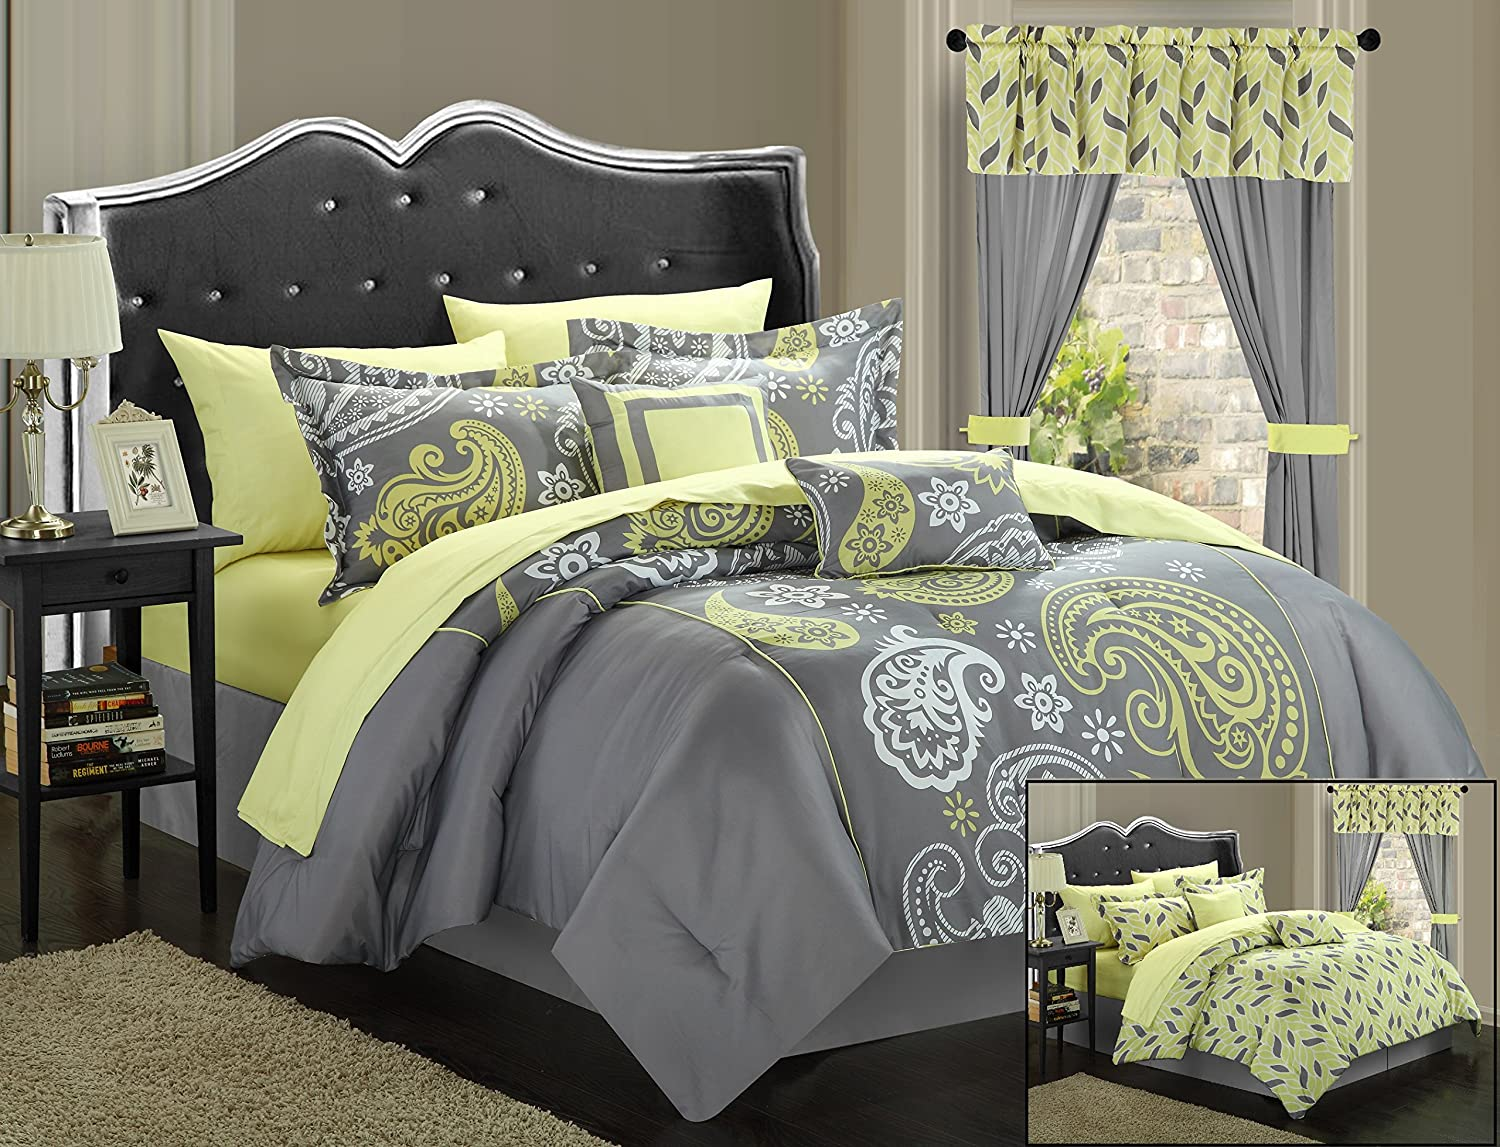 Chic Home Olivia 20-Piece Comforter Set Reversible Paisley Print Complete Bed in a Bag